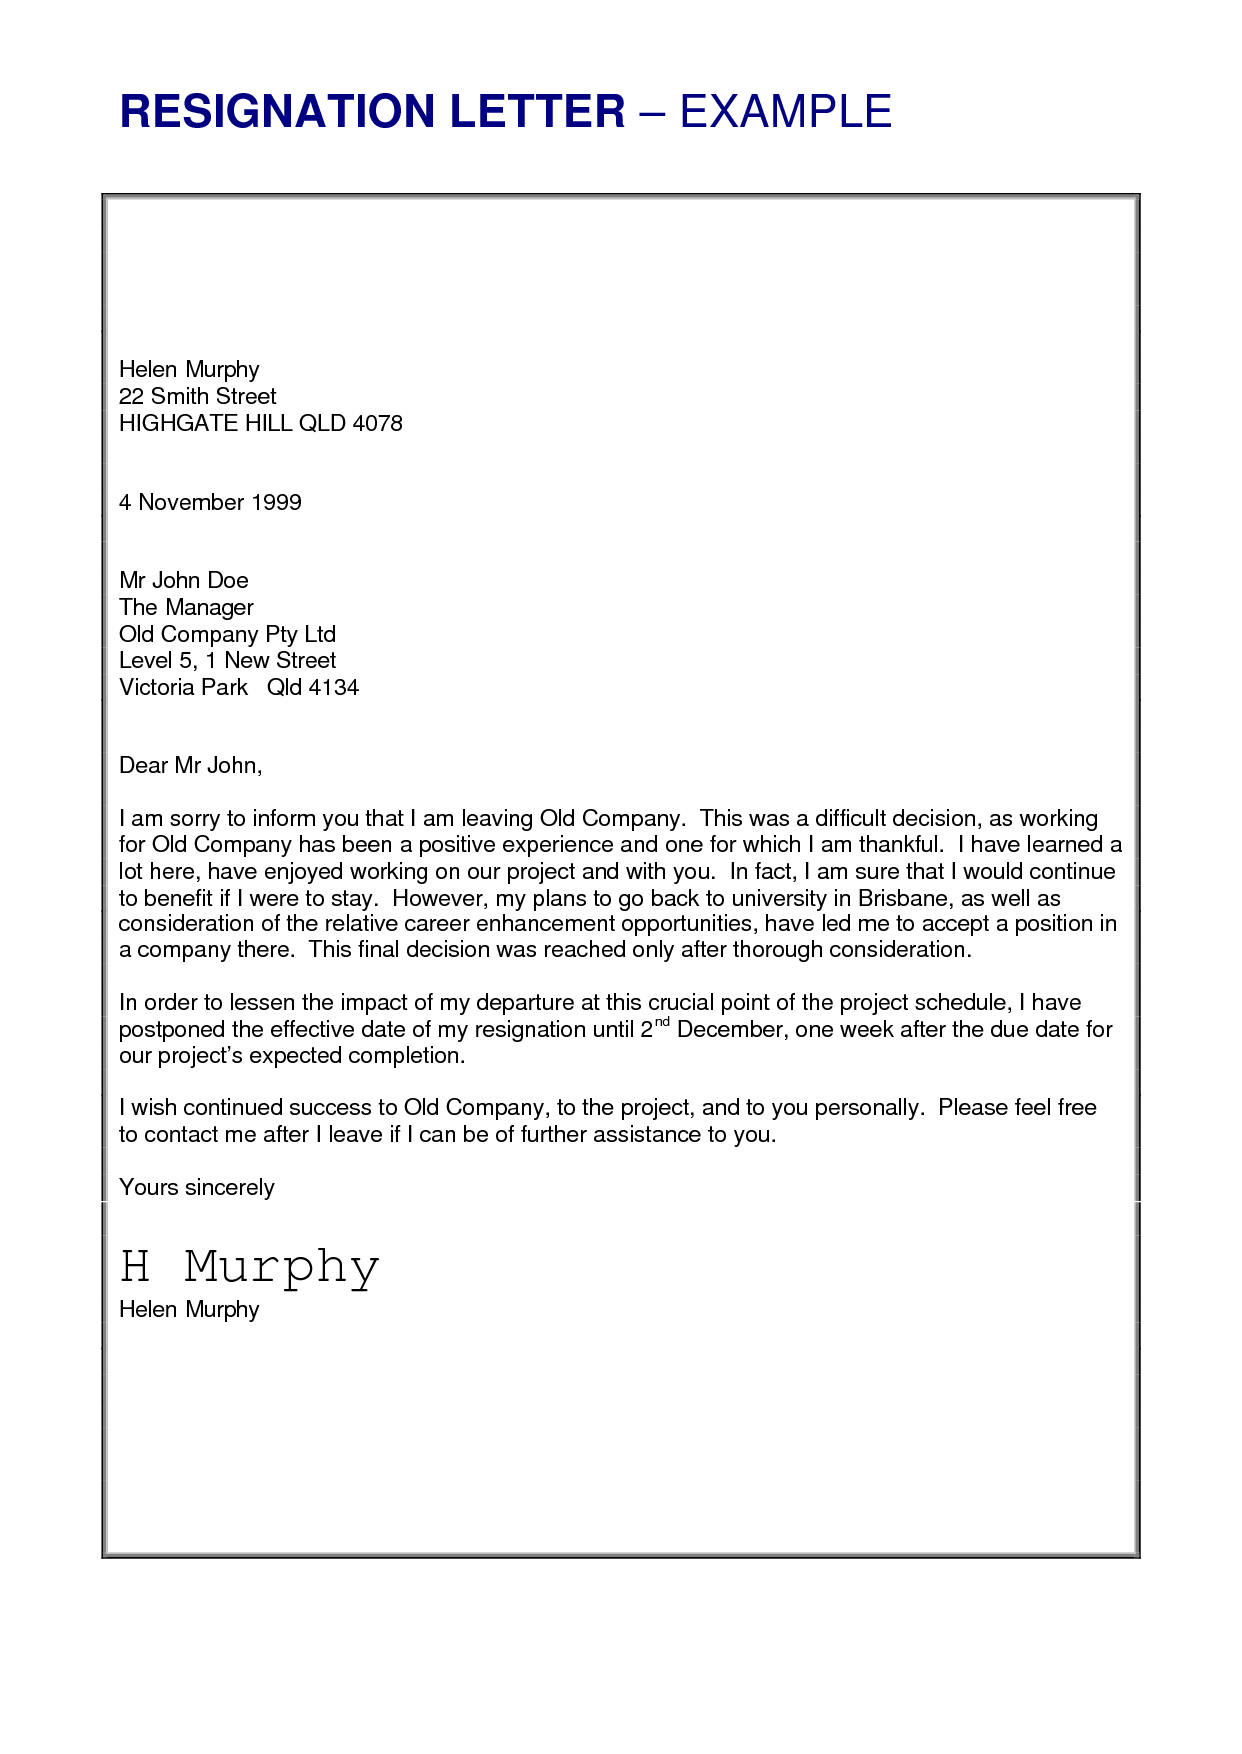 Retirement Resignation Letter Template Free - Job Resignation Letter Sample Loganun Blog